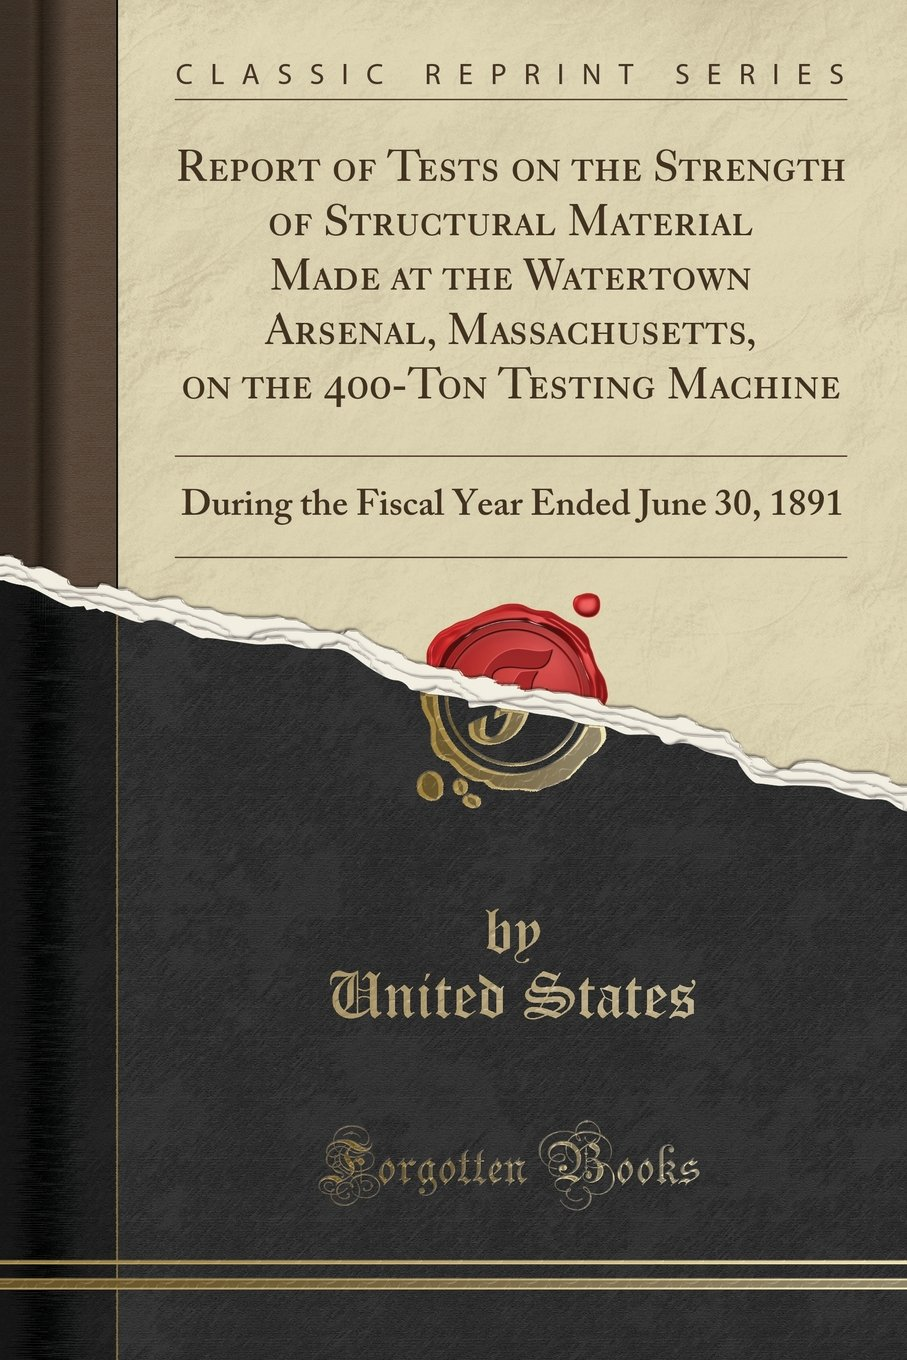 Report of Tests on the Strength of Structural Material Made at the Watertown Arsenal, Massachusetts, on the 400-Ton Testing Machine: During the Fiscal Year Ended June 30, 1891 (Classic Reprint) pdf epub